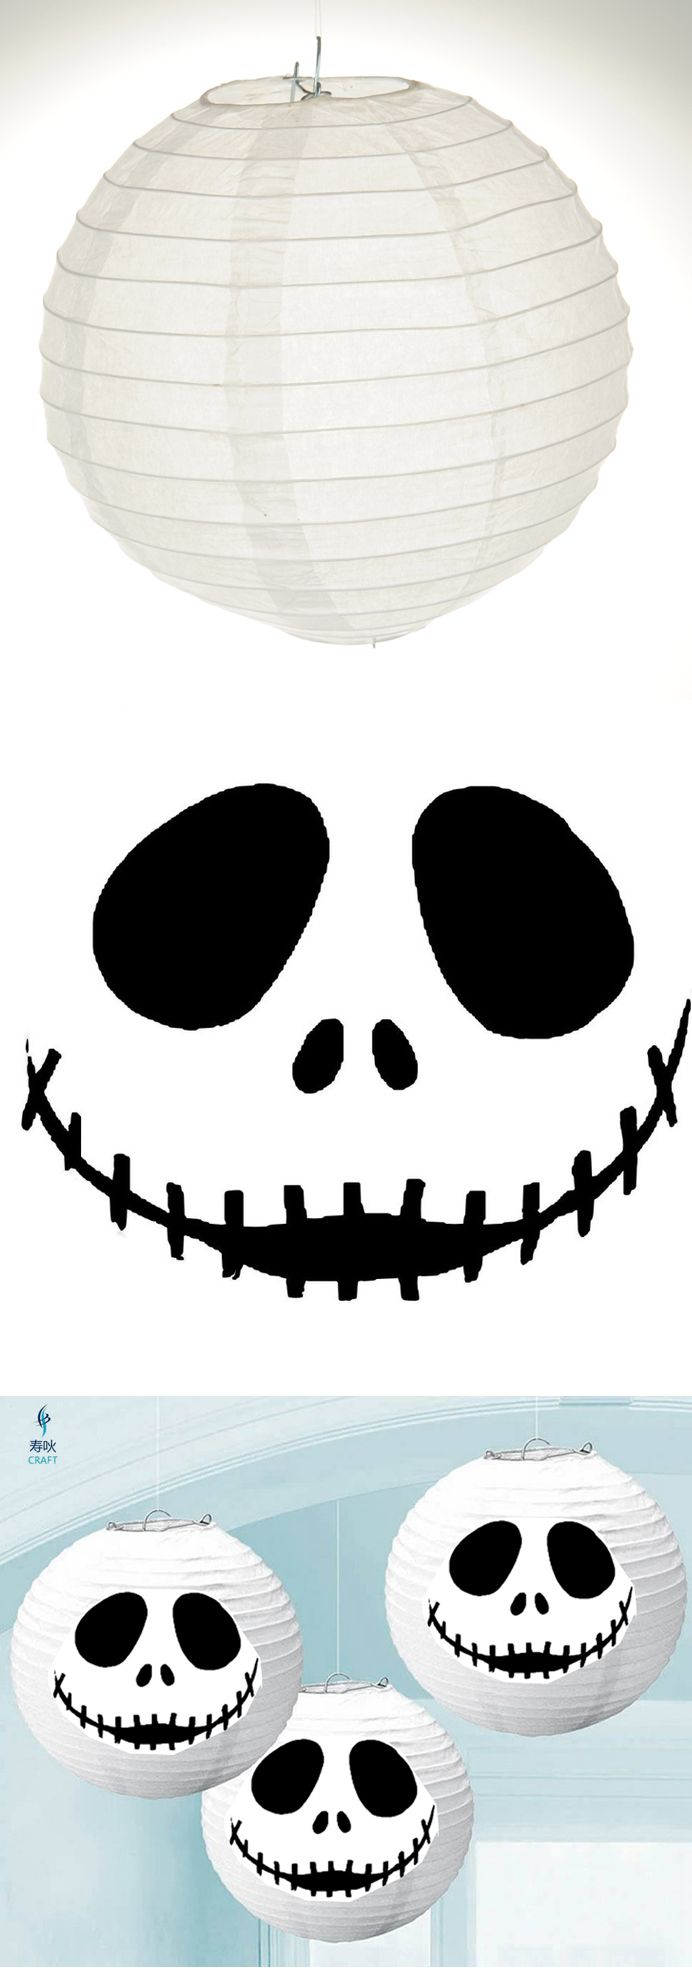 Buy white paper lanterns at any party store. Print out Jack Skellington pumpkin carving pattern (also pinned here). Cut out pattern. Tape or glue to lanterns. Instant Jack Skellington paper lanterns! (You can also light them up with string lantern lights). Halloween with Tim Burton ~~ Halloween Party Decorations & Ideas